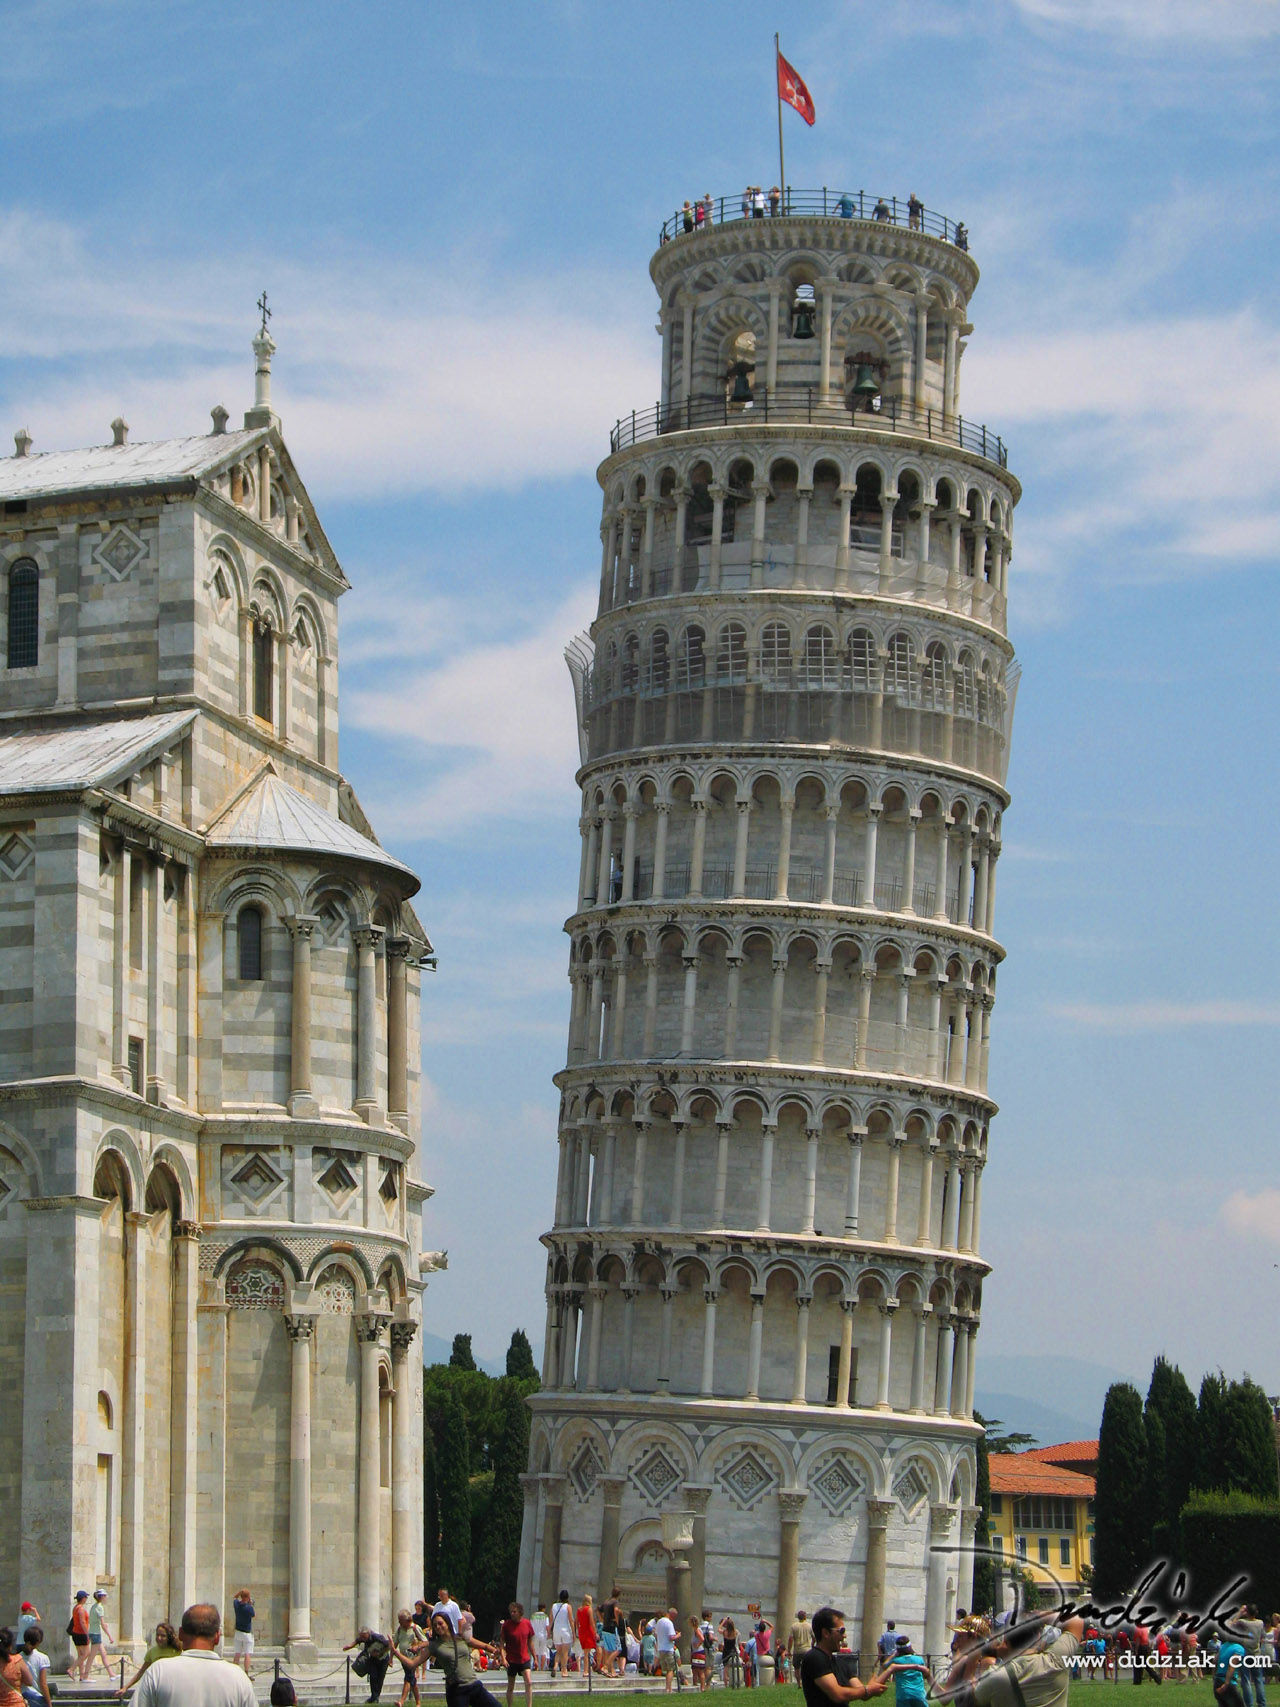 Picture of Leaning Tower of Pisa next to the Cahedral of Pisa in Pisa, Italy.